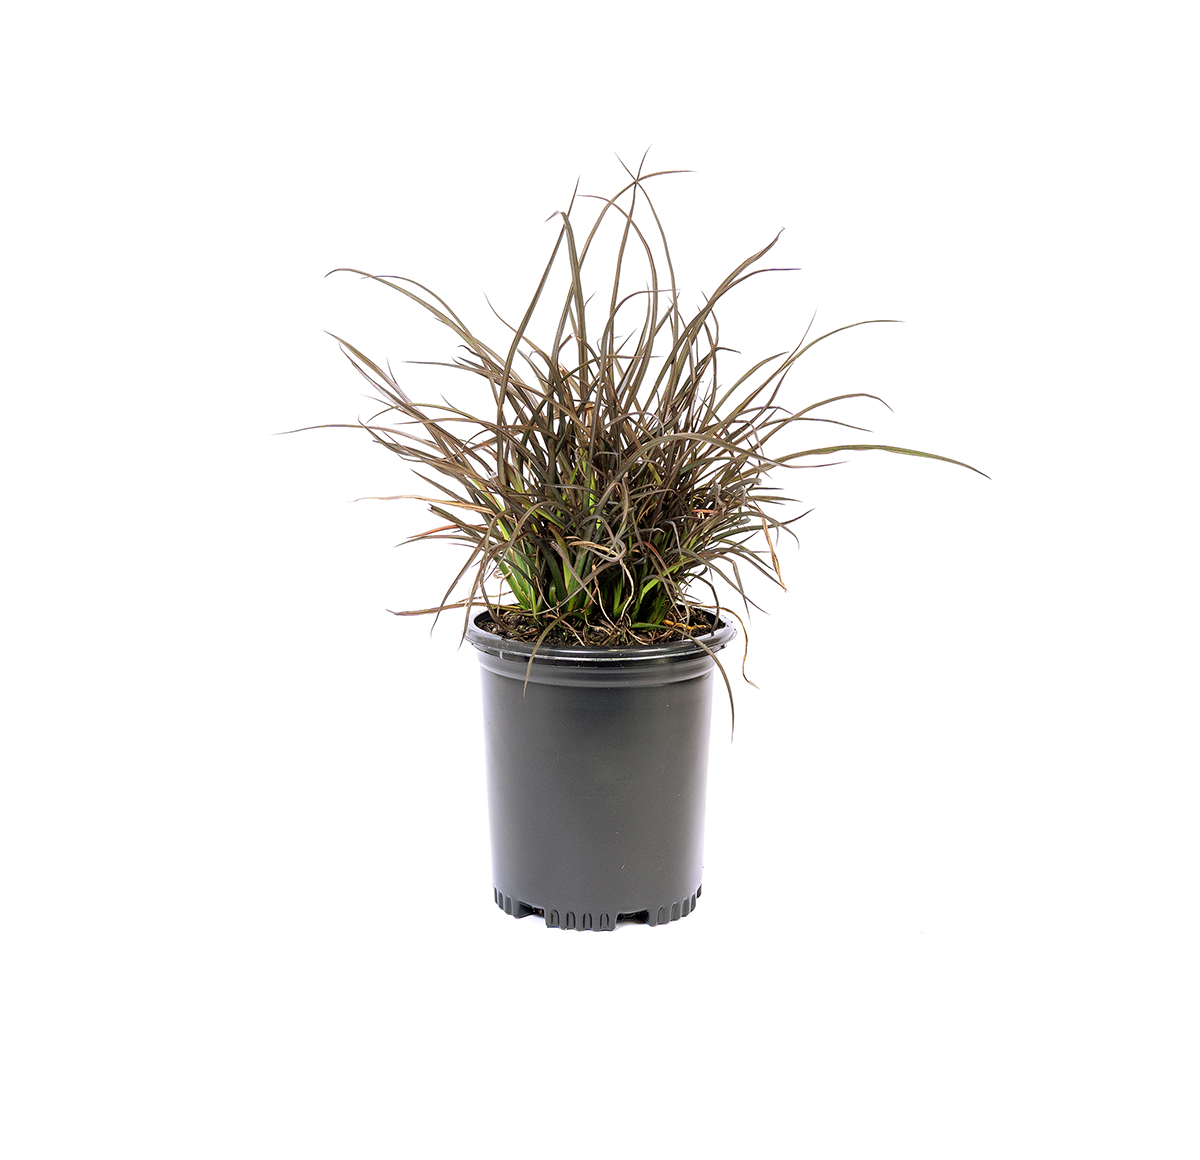 single potted New Zealand flax jack Spratt,an excellent dwarf variety that rapidly forms a dense low clump with many small fans and bronze/brown leaves